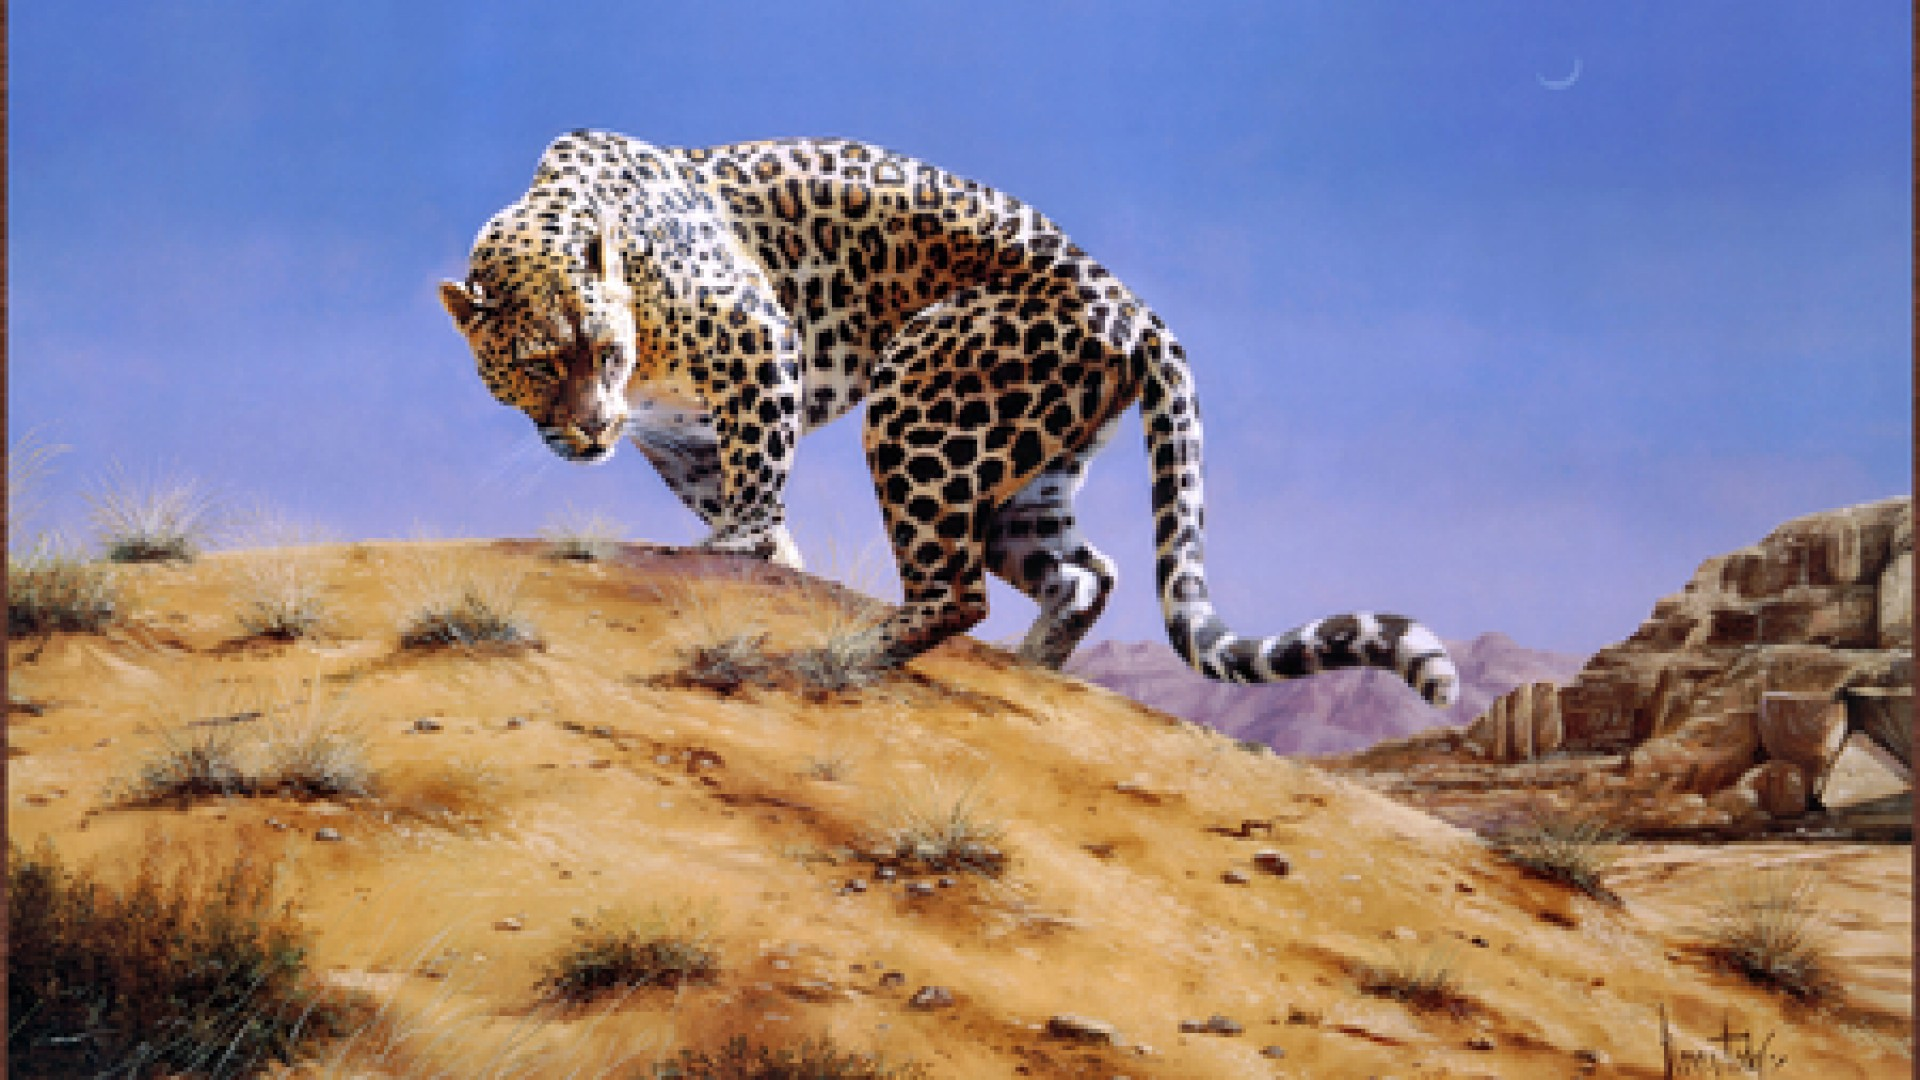 Arabian leopard images amp pictures becuo